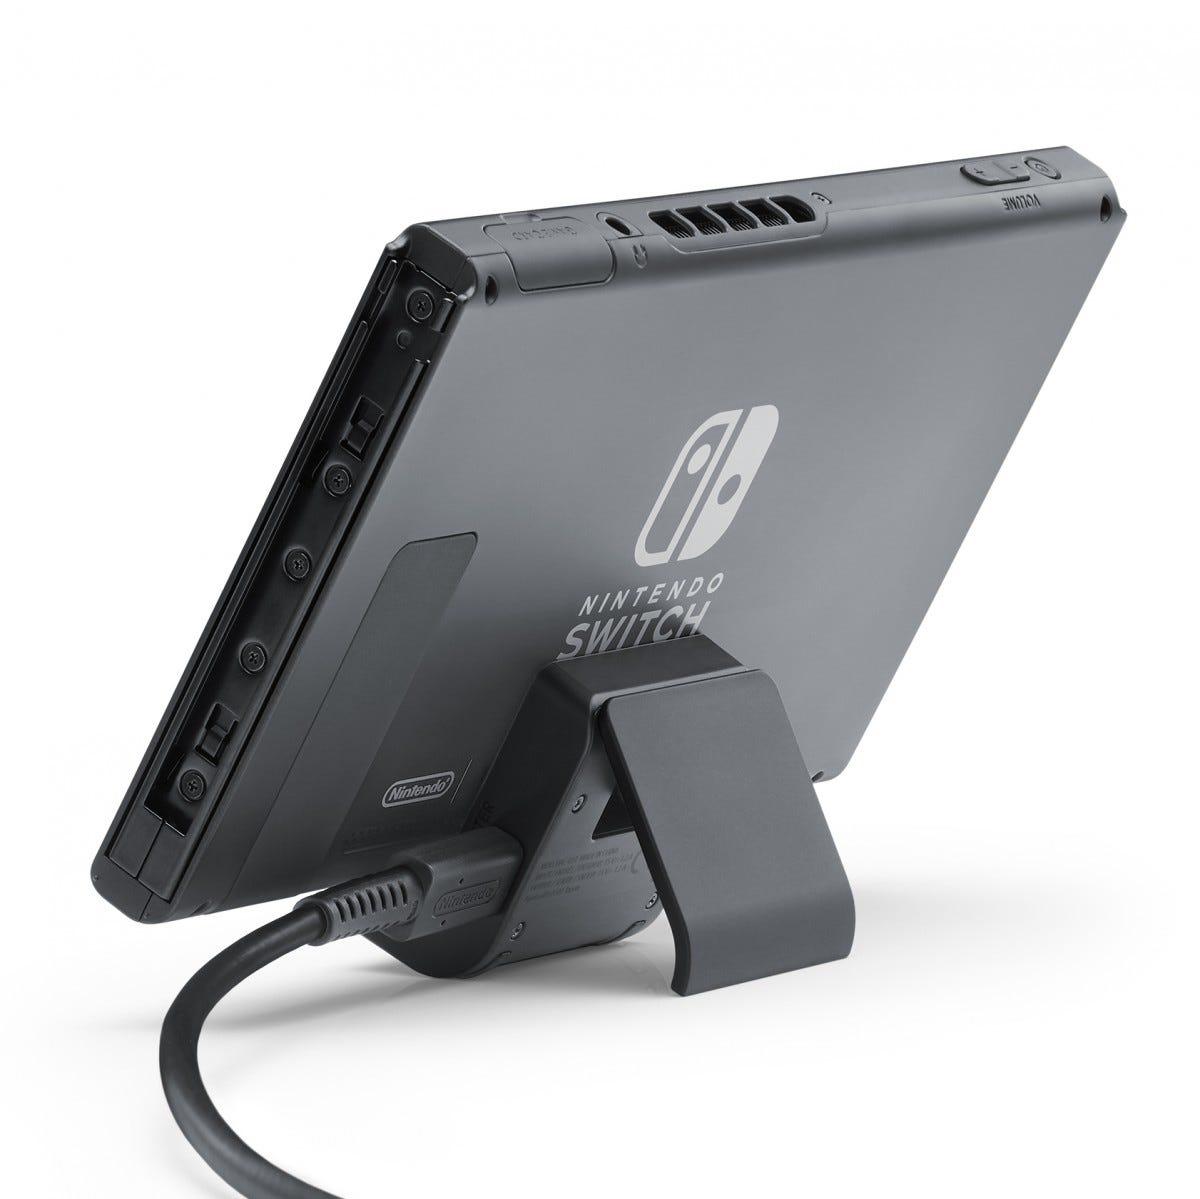 nintendo, switch, kickstand, charging stand,